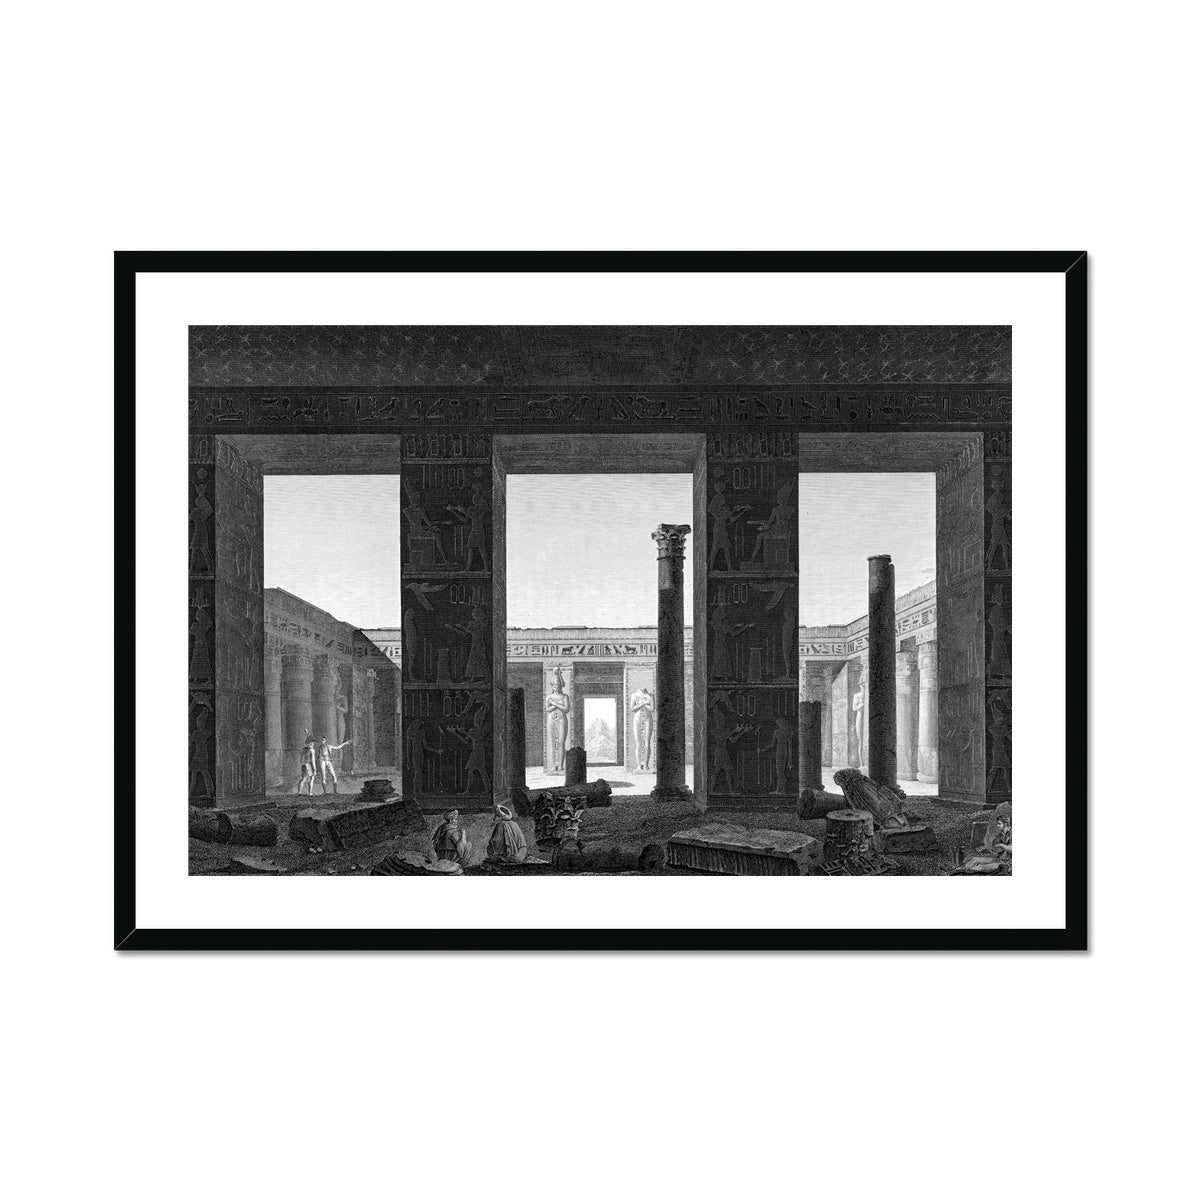 Interior View of the Palace Peristyle - Medynet-Abou - Thebes Egypt -  Framed & Mounted Print